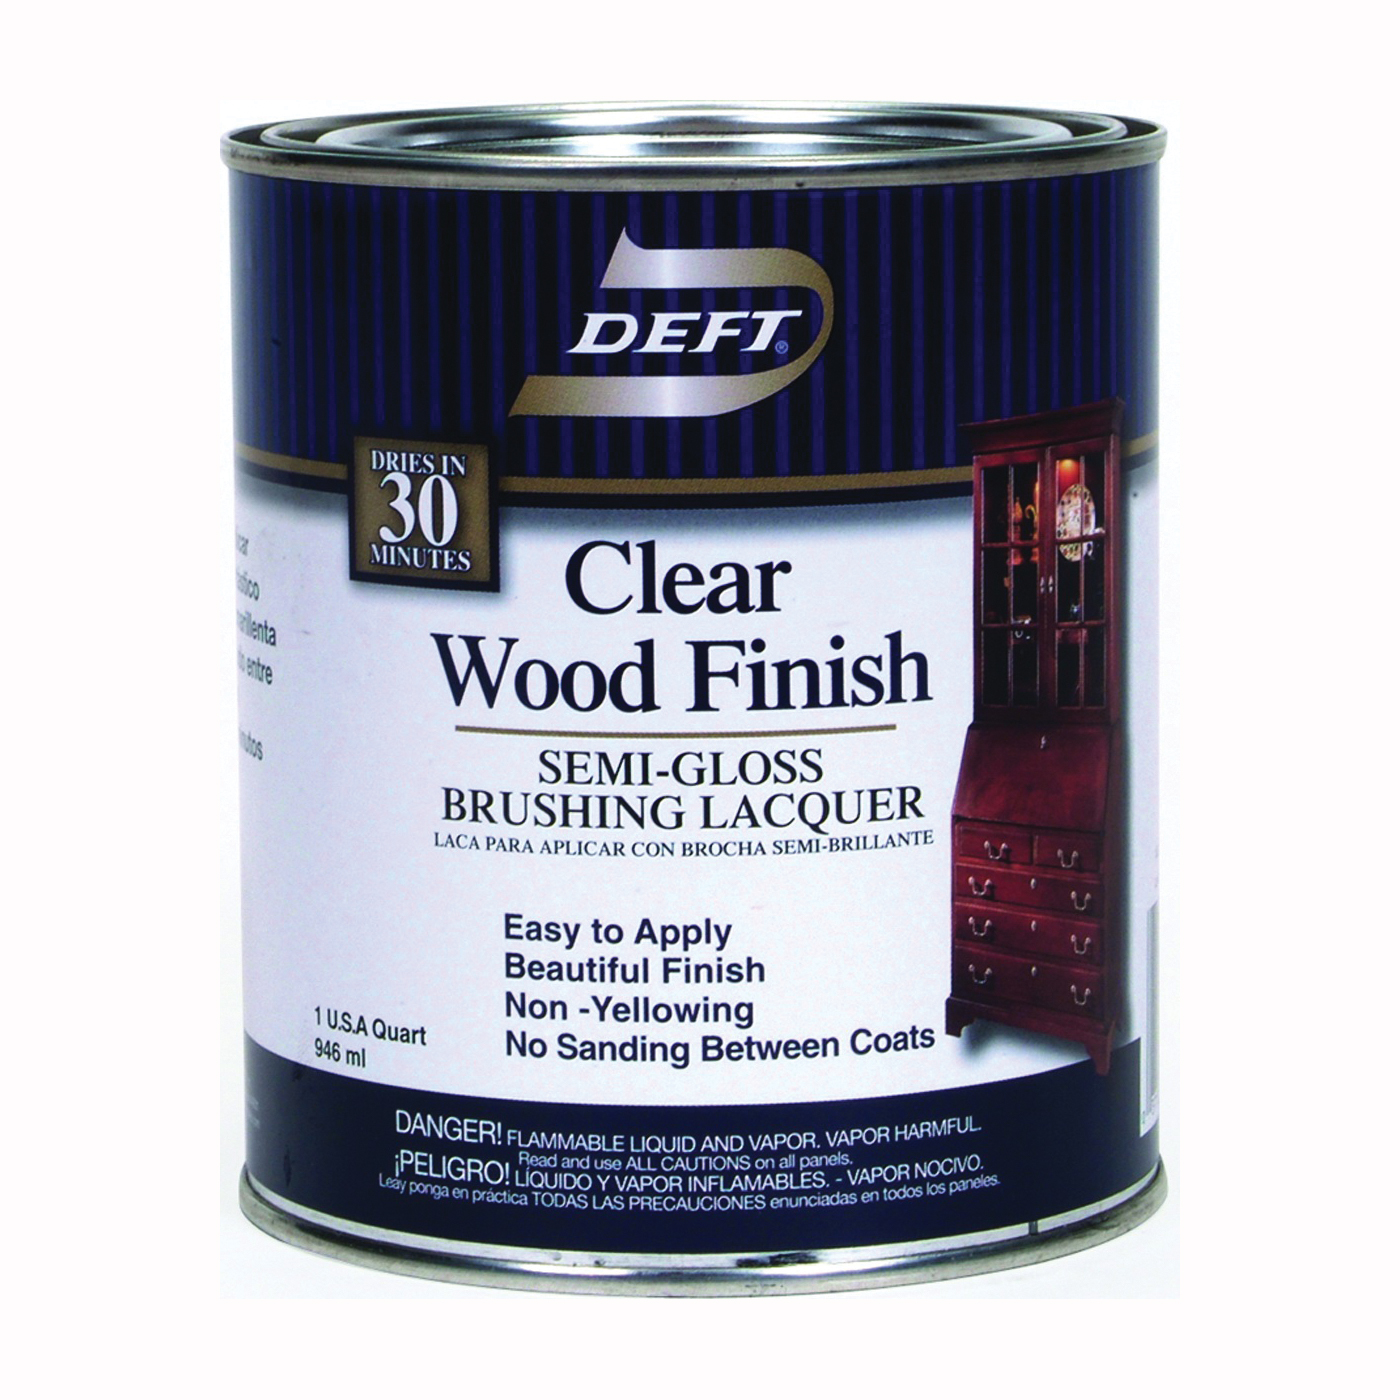 Picture of DEFT 011-04 Brushing Lacquer, Semi-Gloss, Liquid, Clear, 1 qt, Can